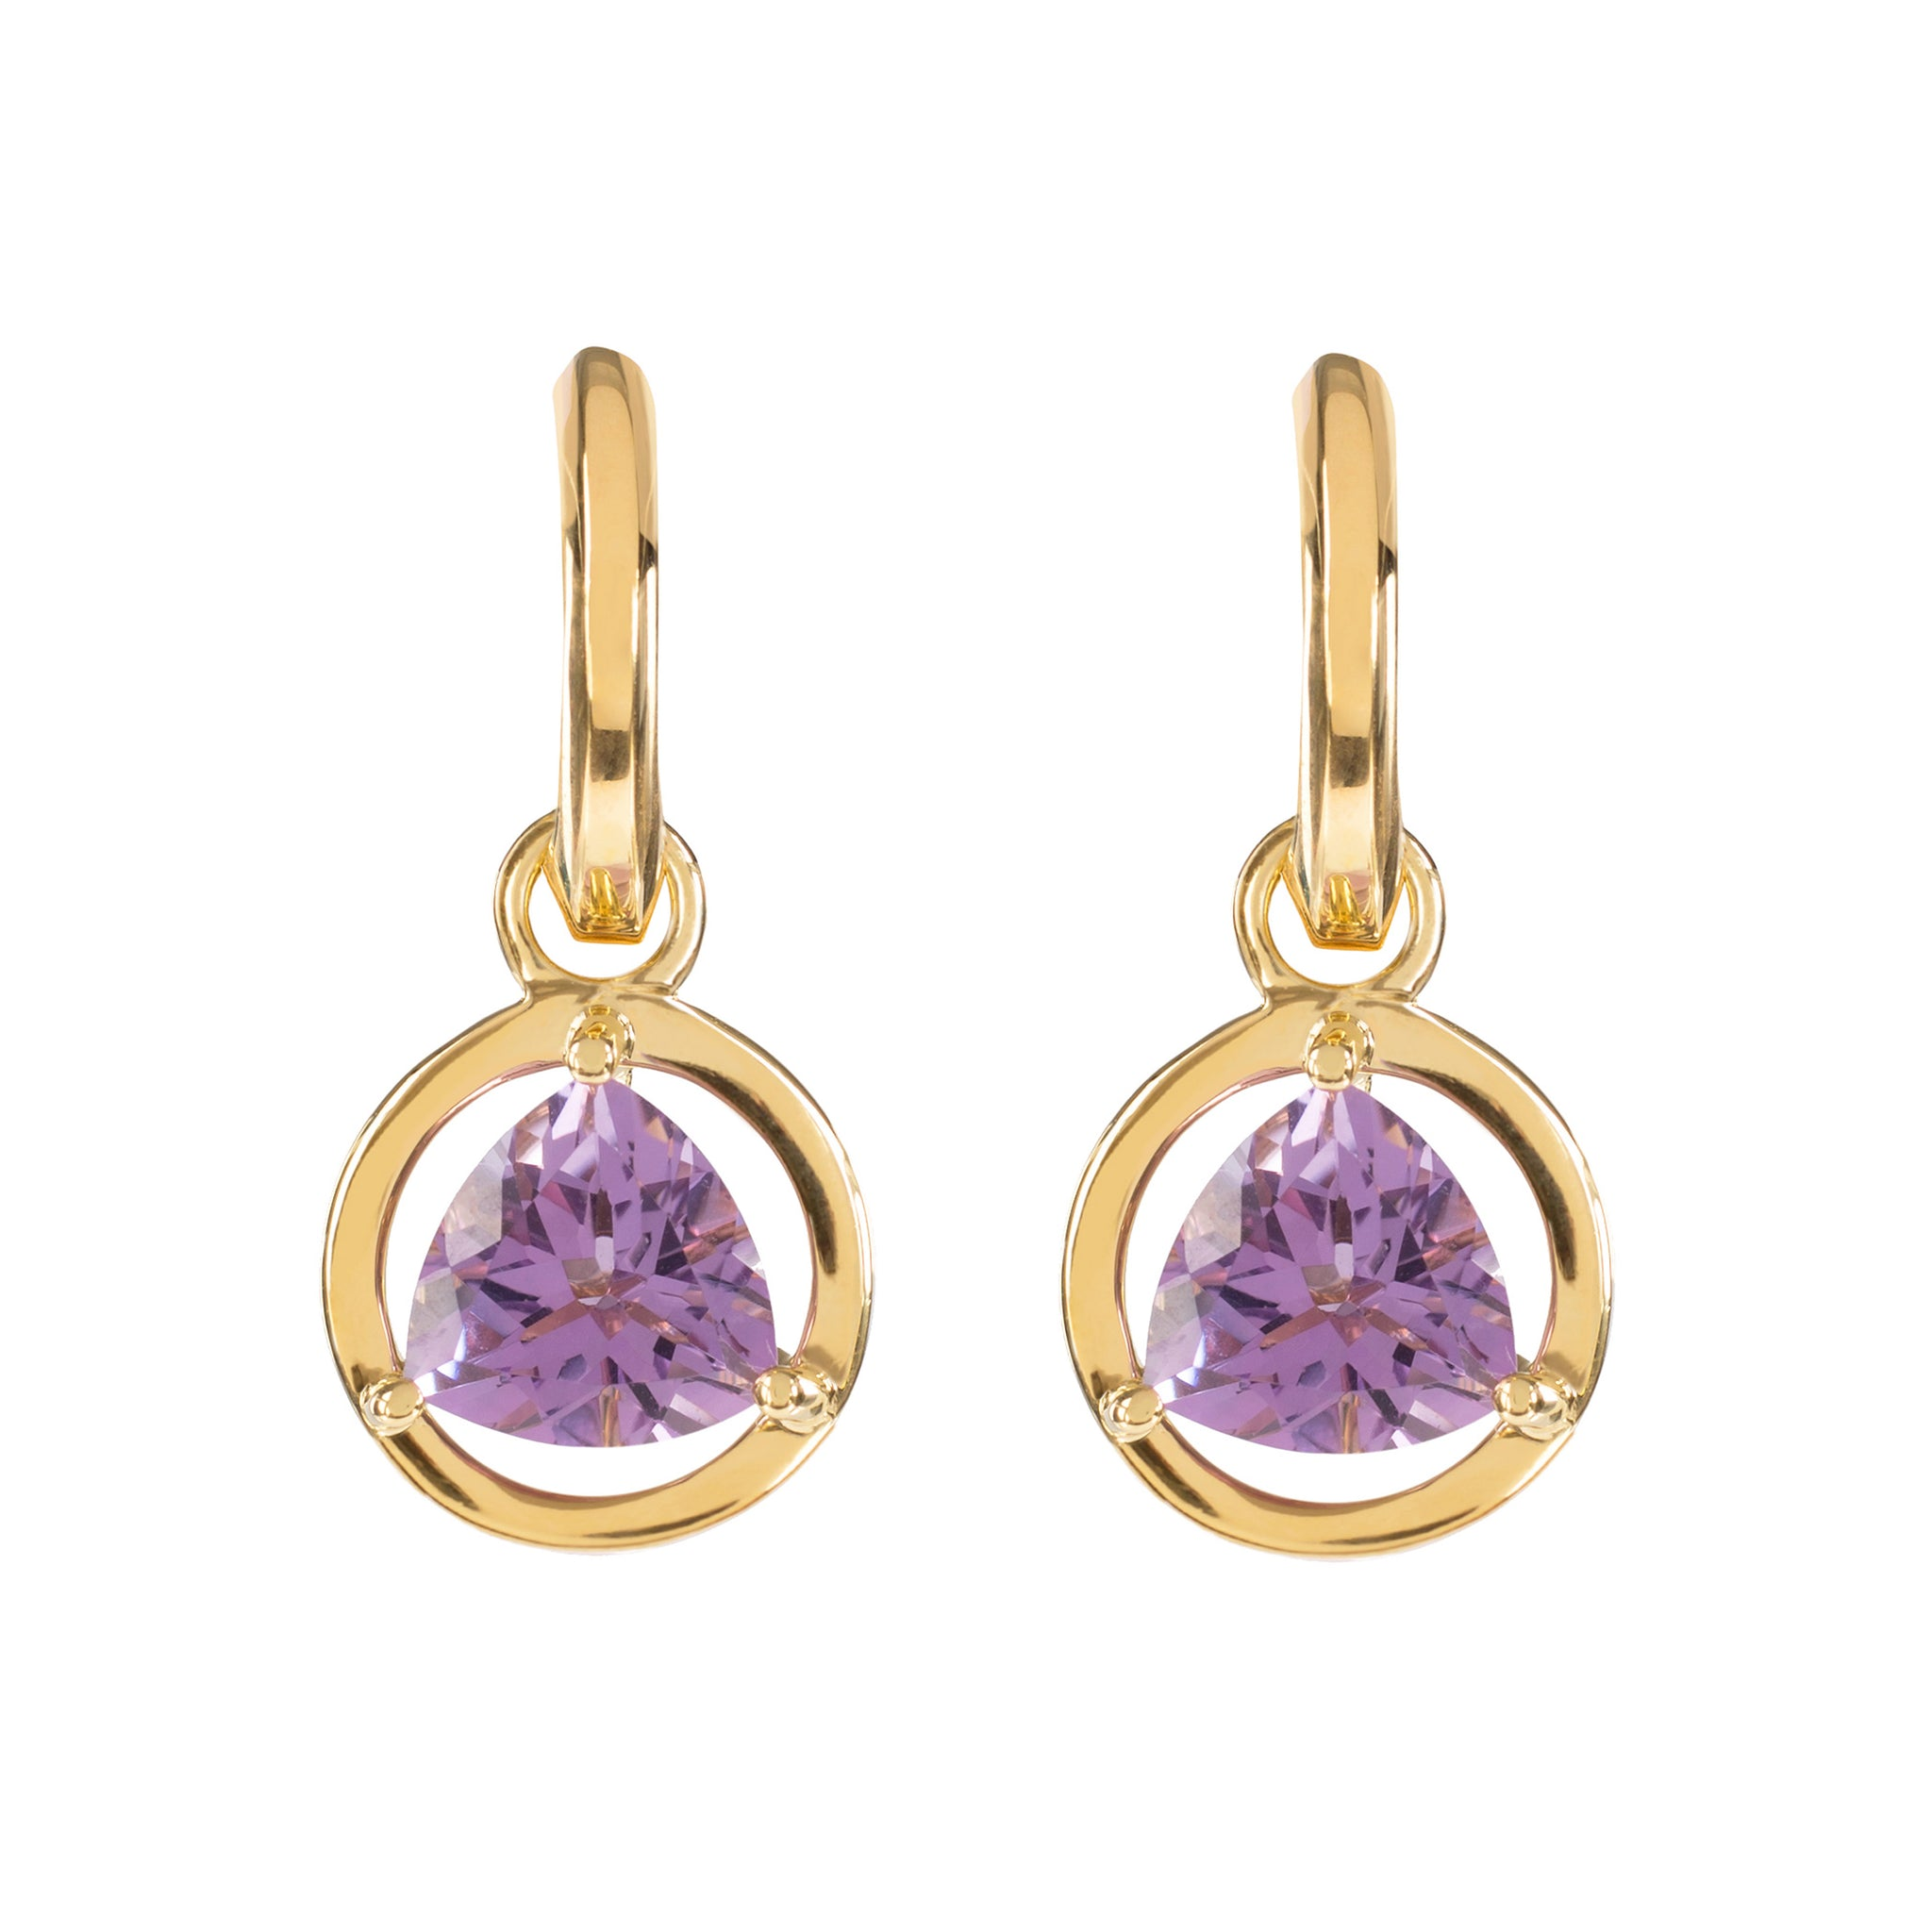 DAVINA COMBE - PALERMO DROP EARRINGS WITH AMETHYST